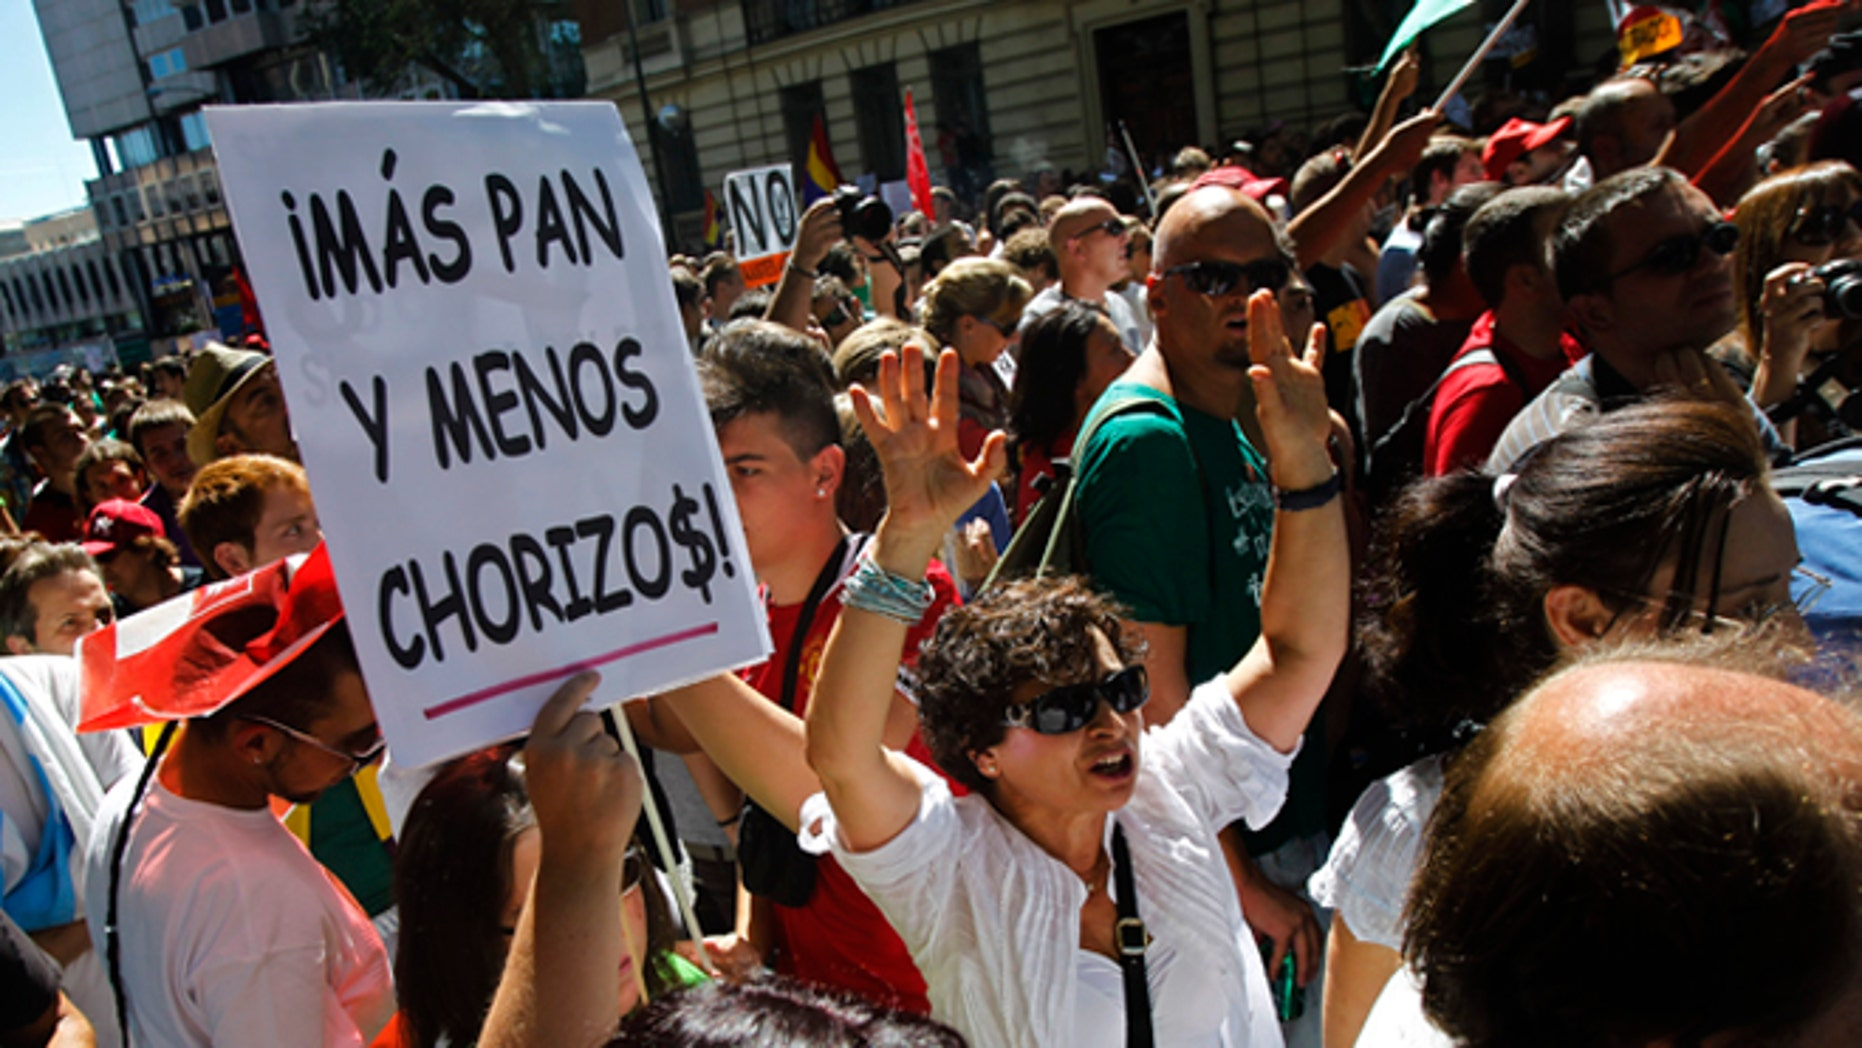 """People shout slogans and show a banner reading """"more bread and less thieves"""" protest against austerity measures applied by the Spanish government, in  Columbus Square in Madrid, Spain, Saturday, Sept. 15, 2012. Tens of thousands of people from all over the country converged on Madrid to hold a large anti-austerity demonstration on Saturday. By mid-morning several major roads had been blocked as buses unloaded protesters at 10 rendezvous points from which marches began. The demonstration was called to protest government cuts during the country's financial crisis. (AP Photo/Andres Kudacki)"""